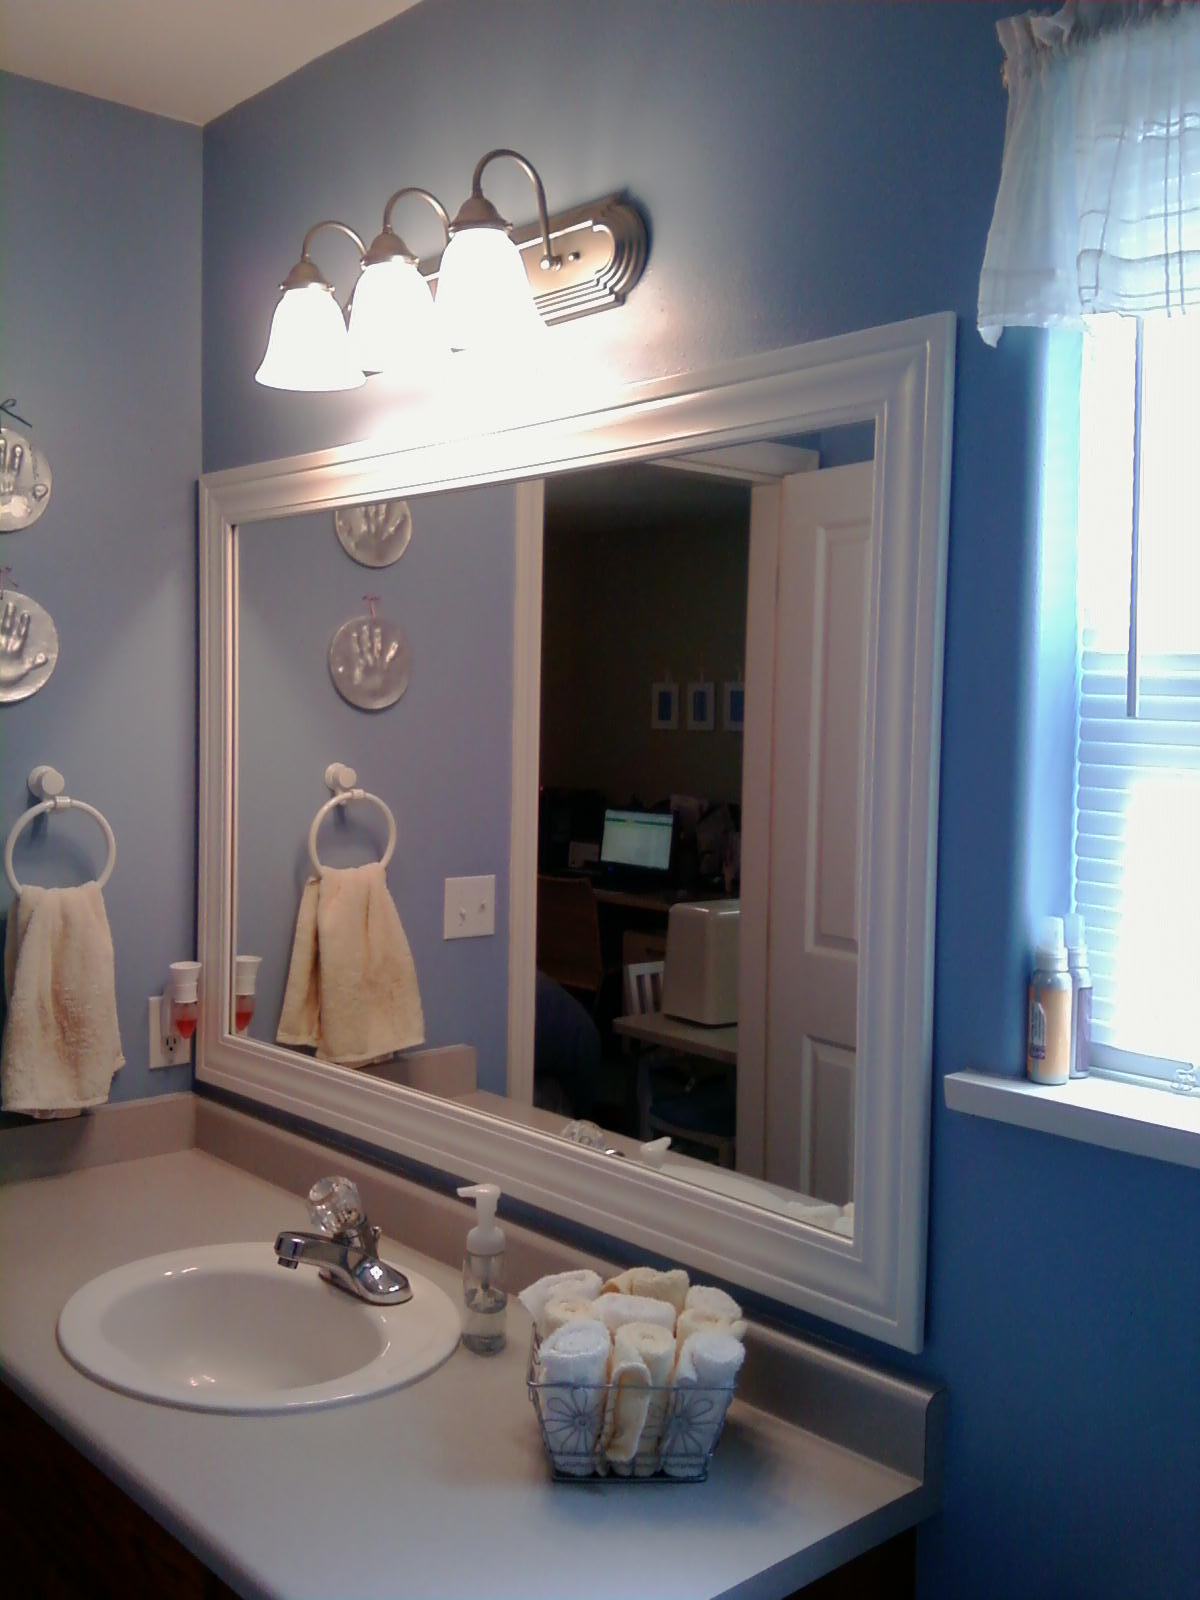 How To Frame A Large Bathroom Mirror This Thrifty House Framed Bathroom Mirror